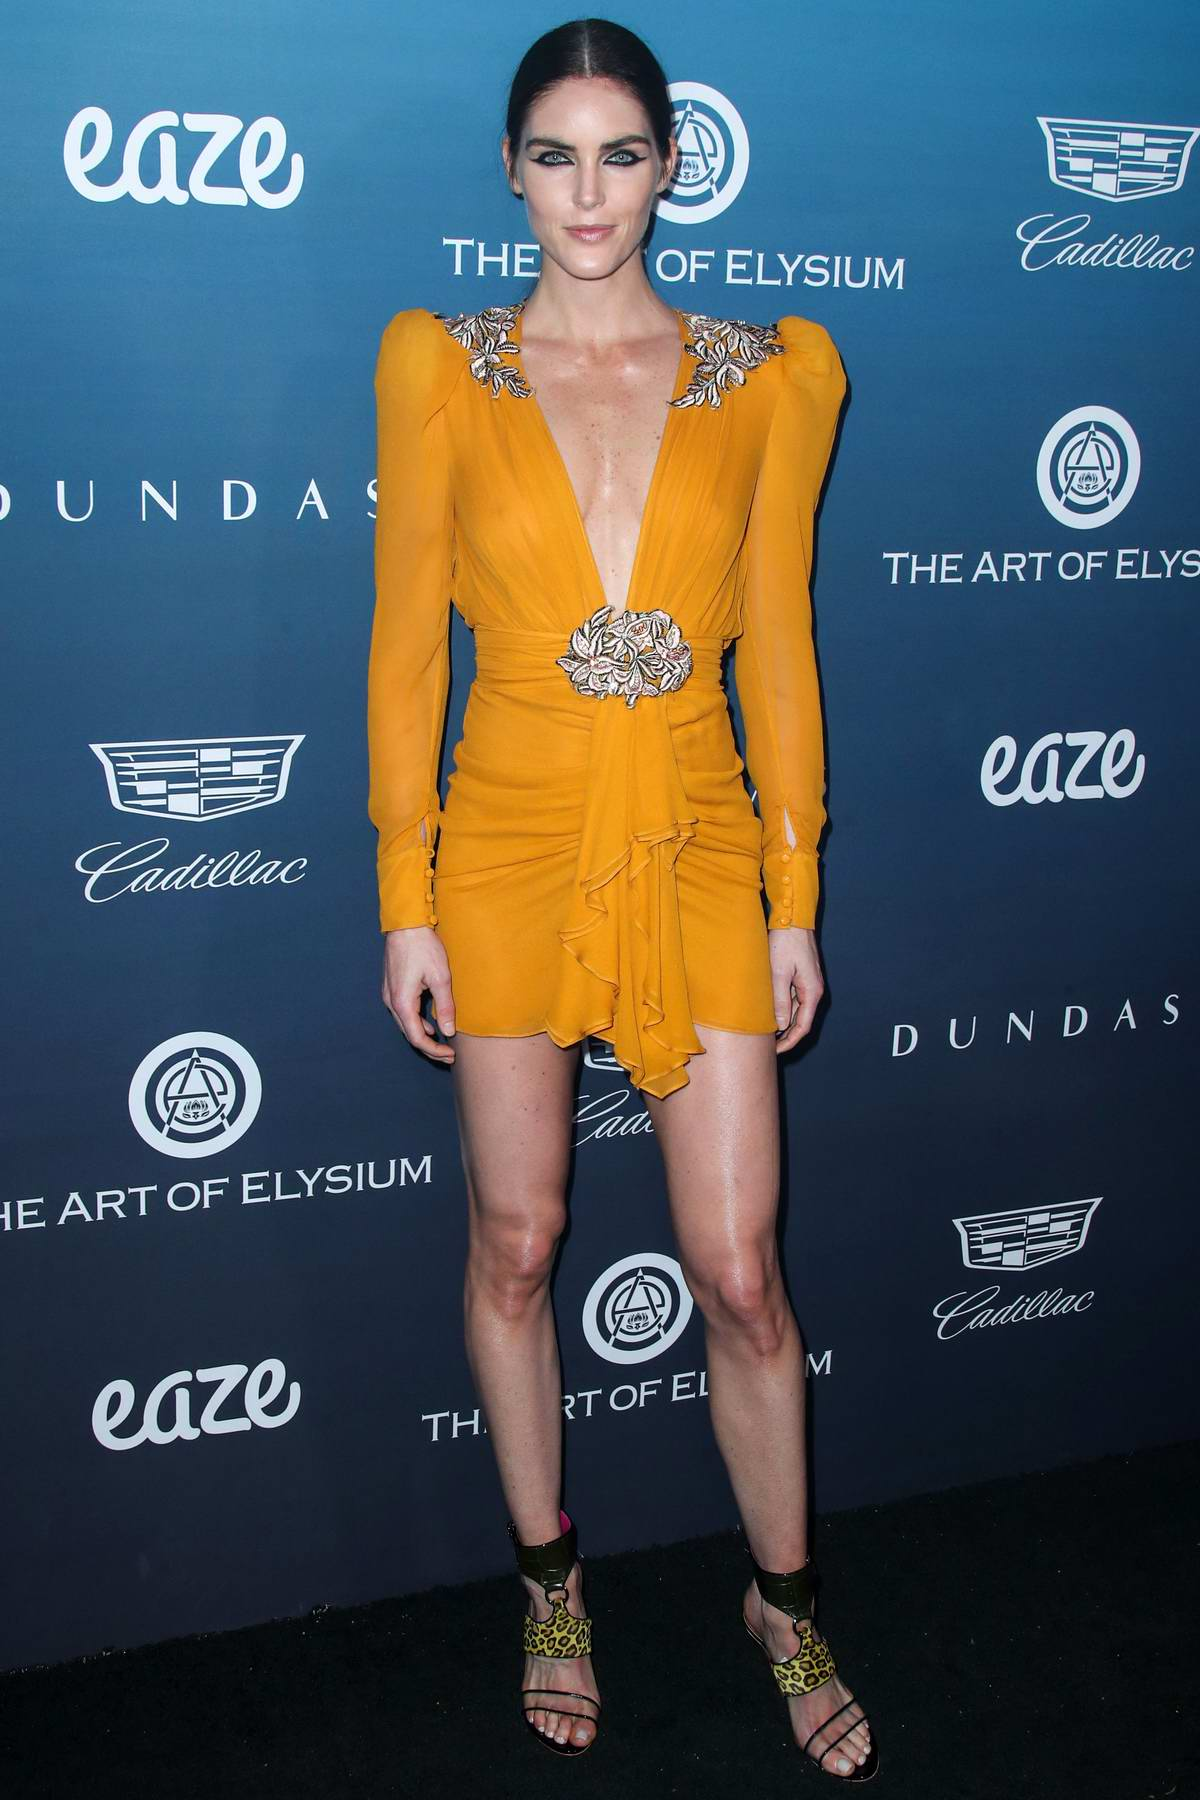 Hilary Rhoda attends The Art of Elysium's 12th Annual Black Tie Event 'Heaven' in Los Angeles